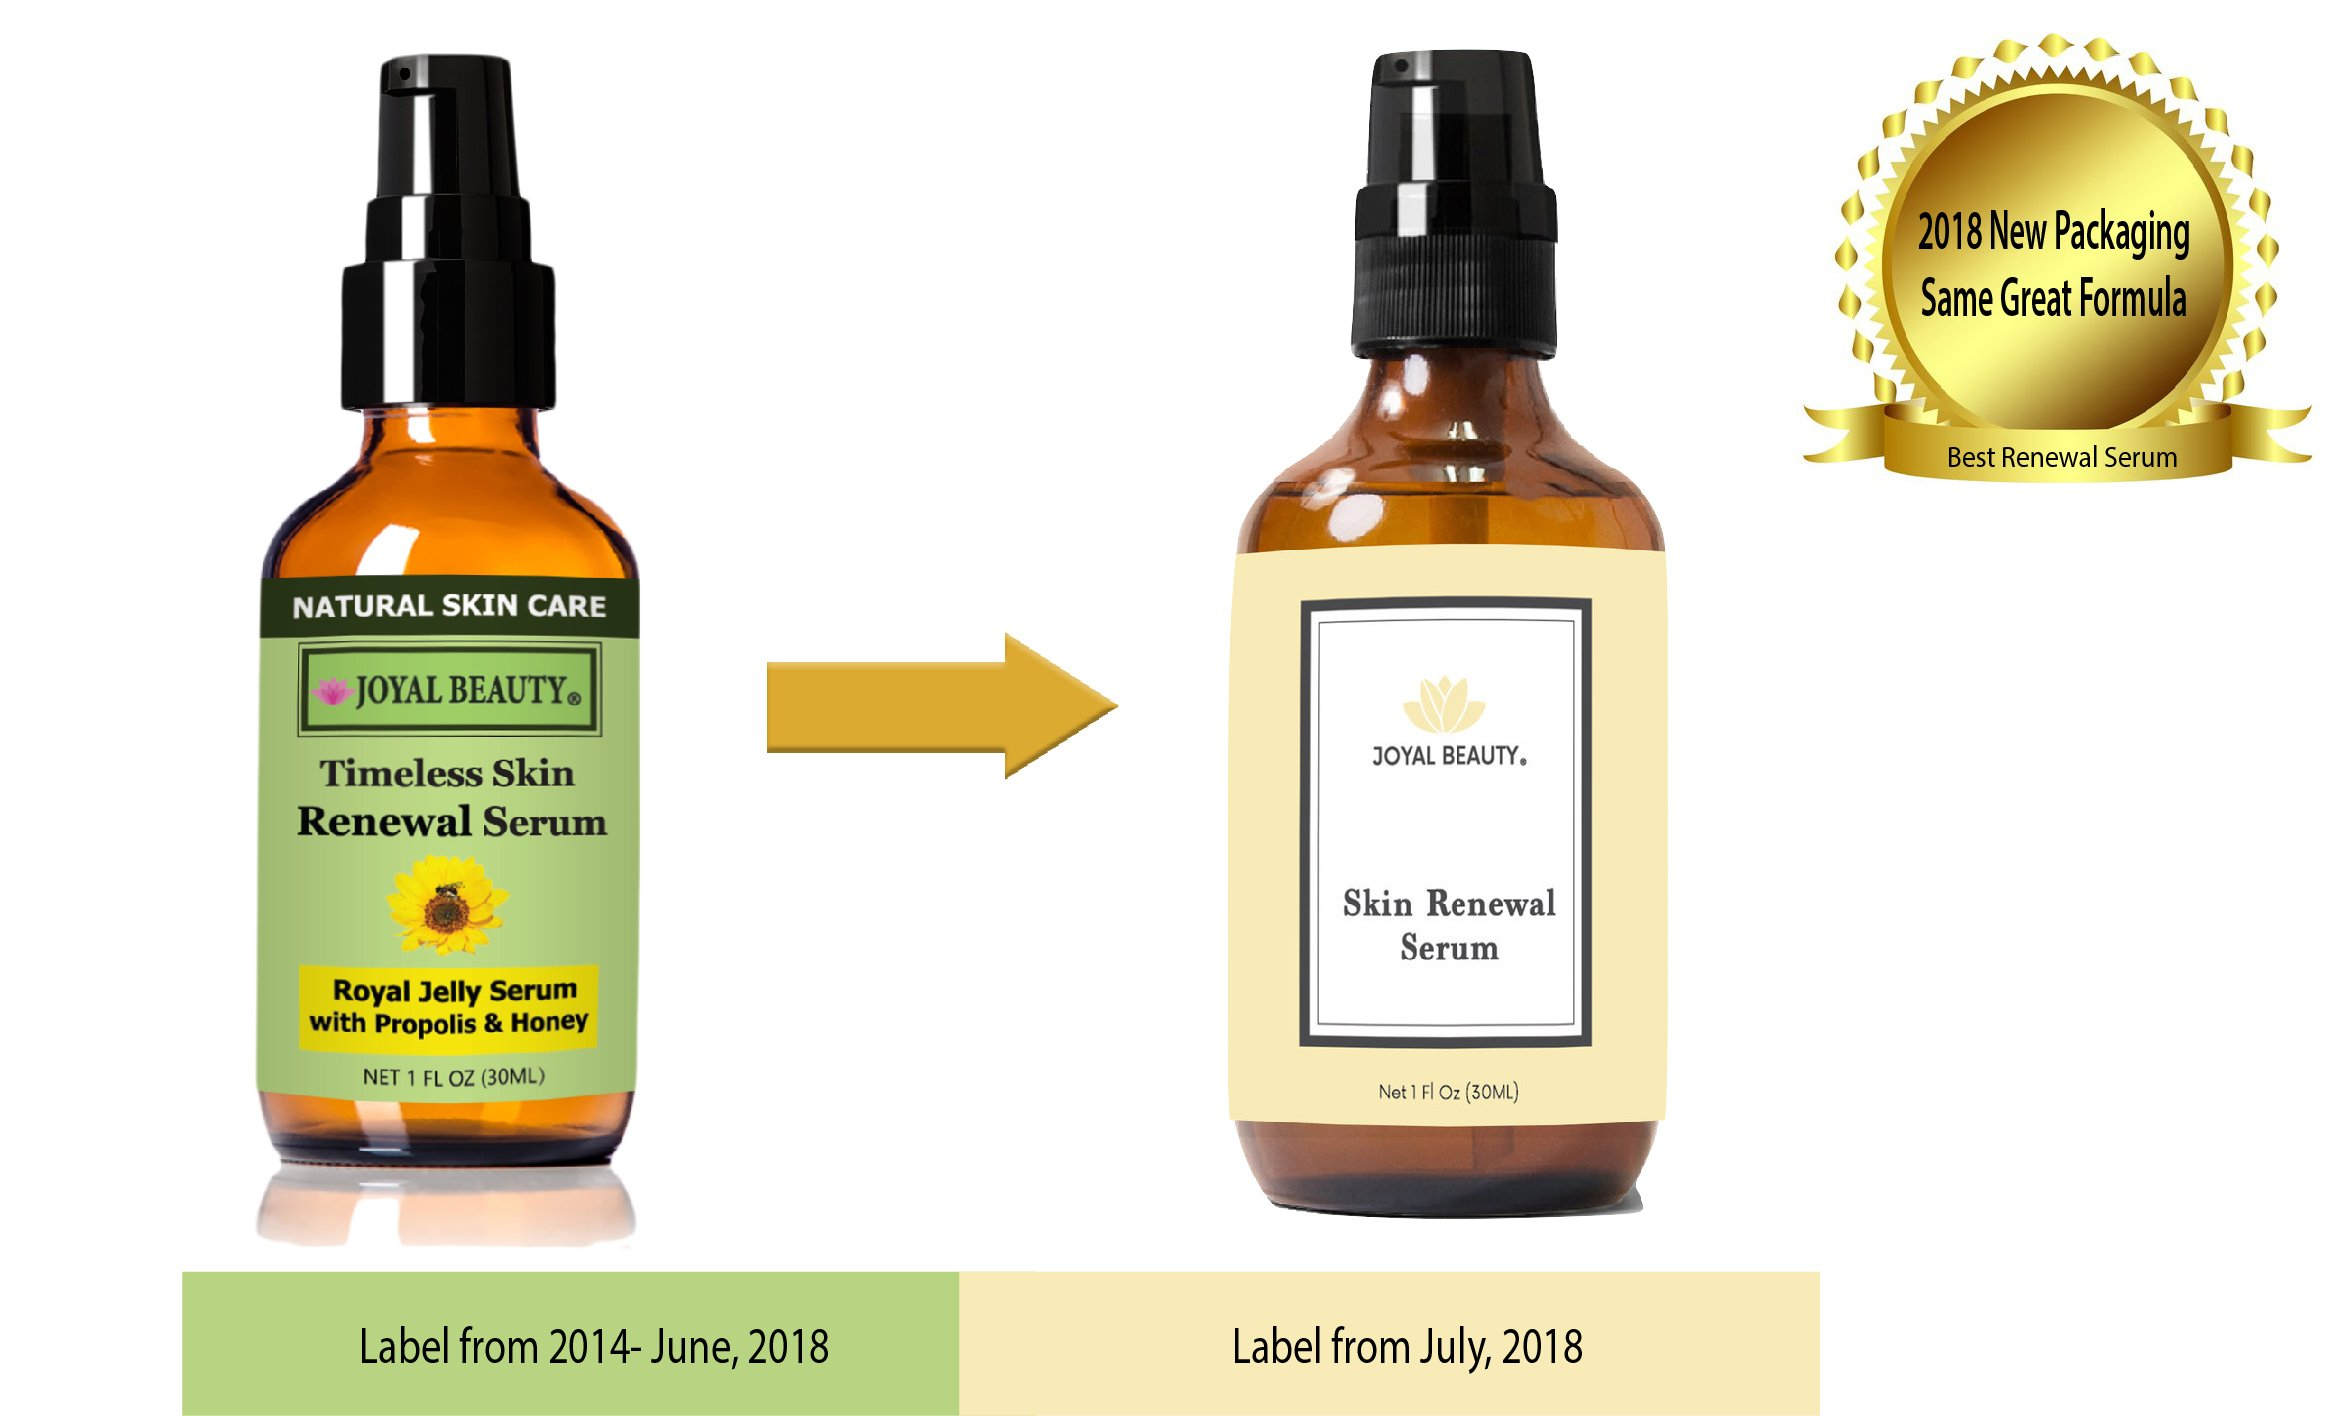 Joyal Beauty Organic Timeless Skin Renewal Serum for Face Skin Eyes. Best Intensive Firming Renewing Resurfacing Solution to Get Your Baby Soft Skin. Enriched with Honey, Royal Jelly, Bee Propolis. by Joyal Beauty (Image #3)